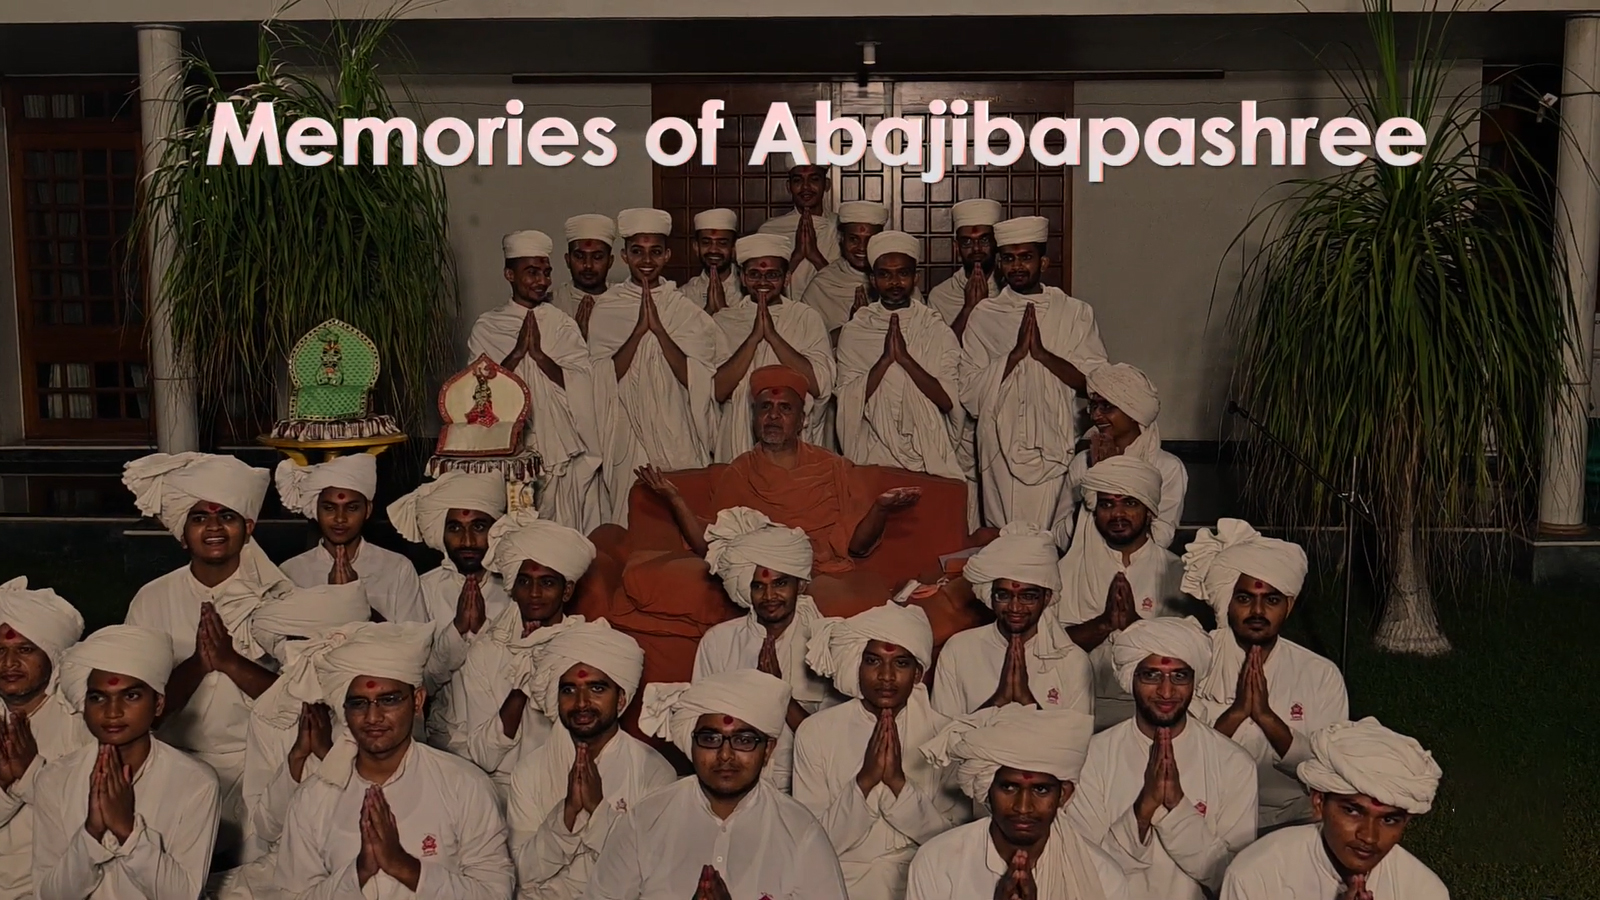 HDH Swamishri Vicharan | Memories of Abajibapashree